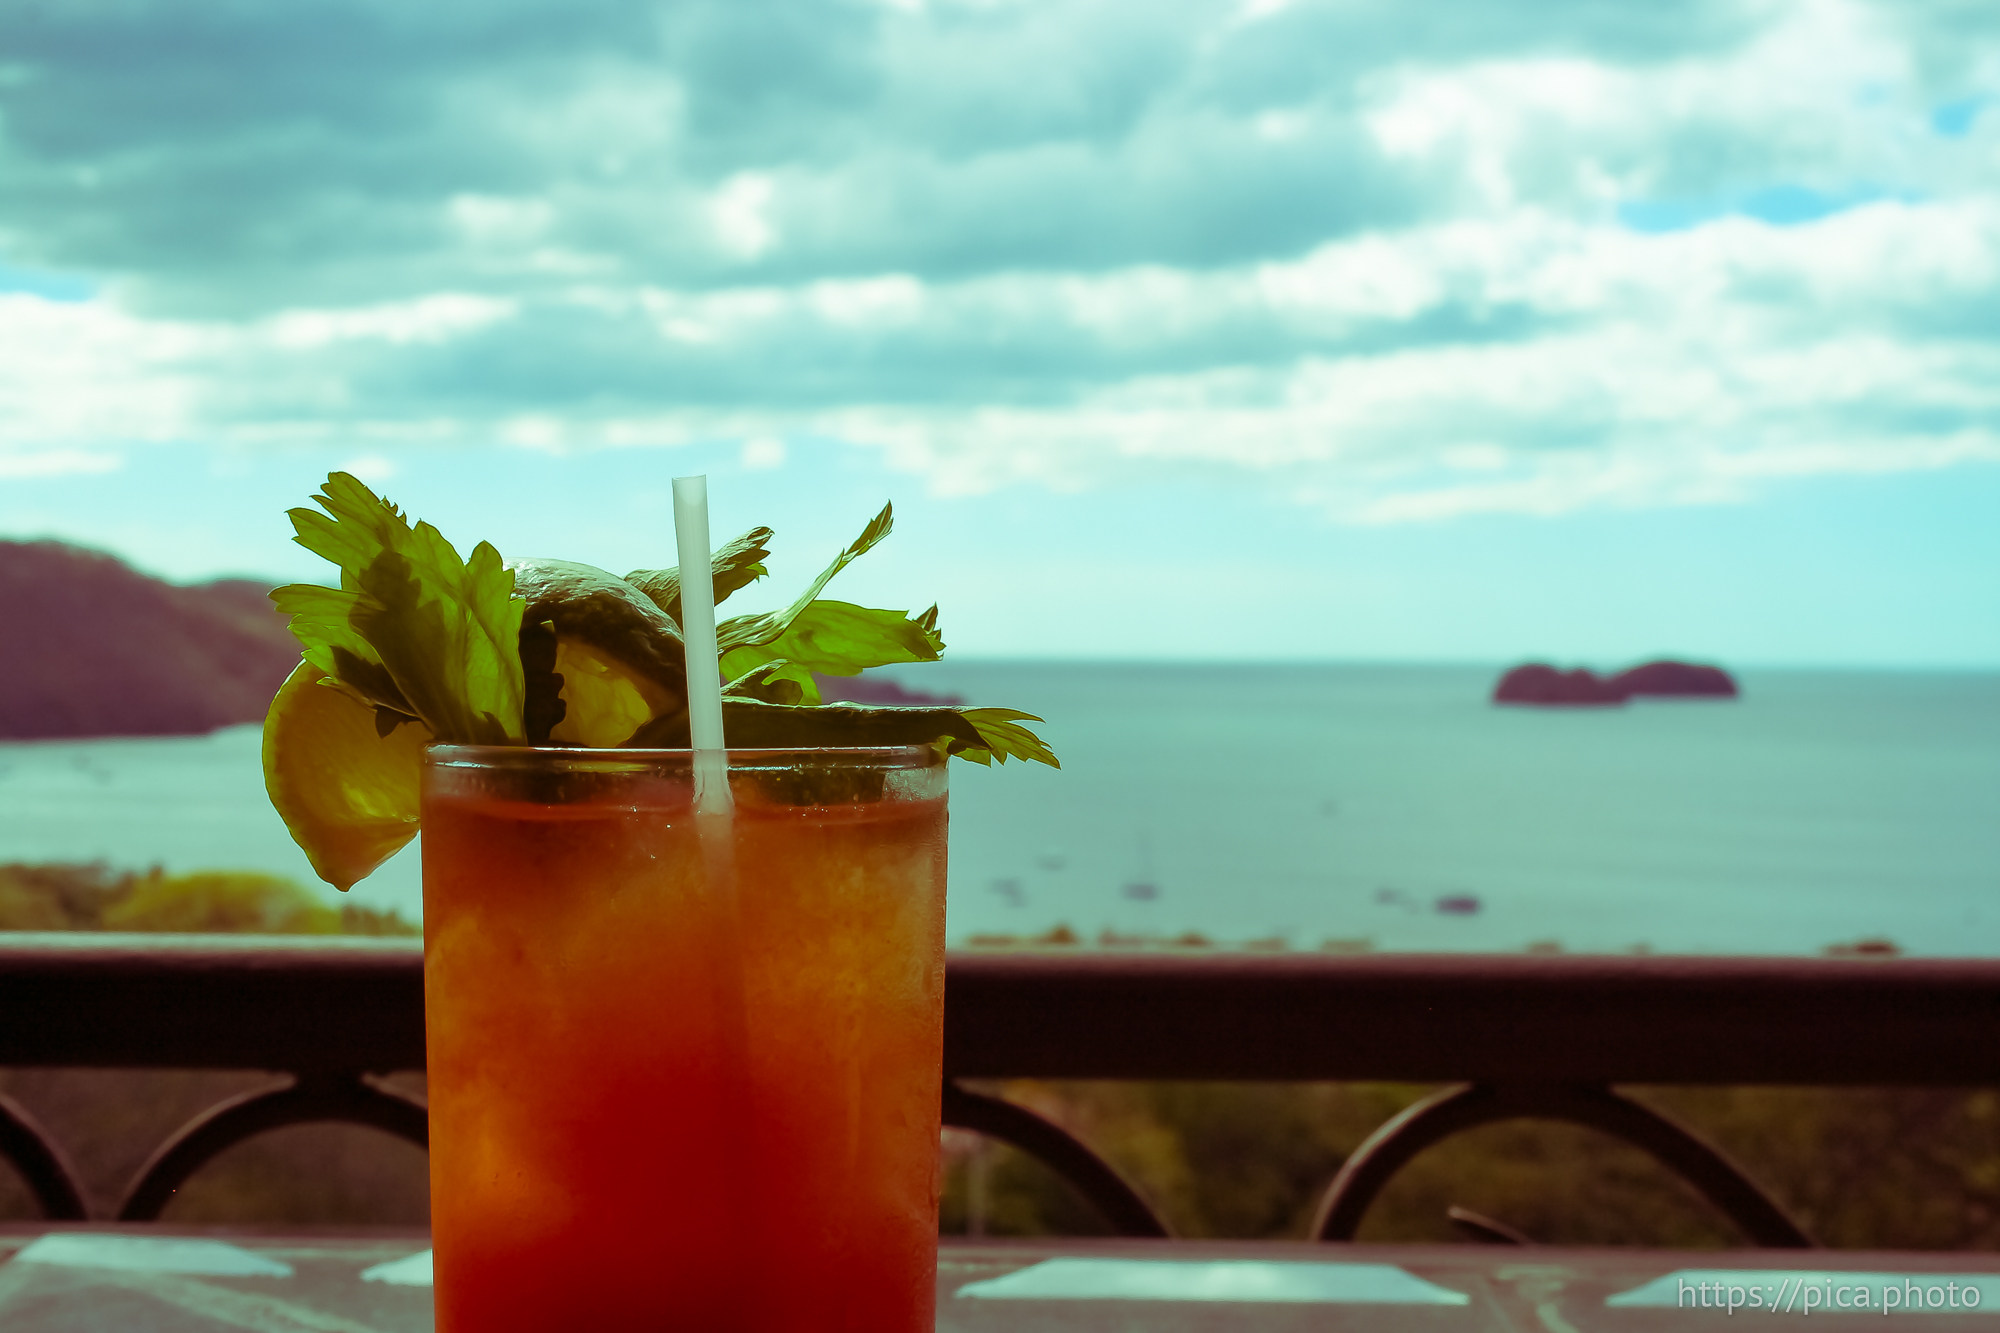 Bloody mary drink overlooking the ocean view